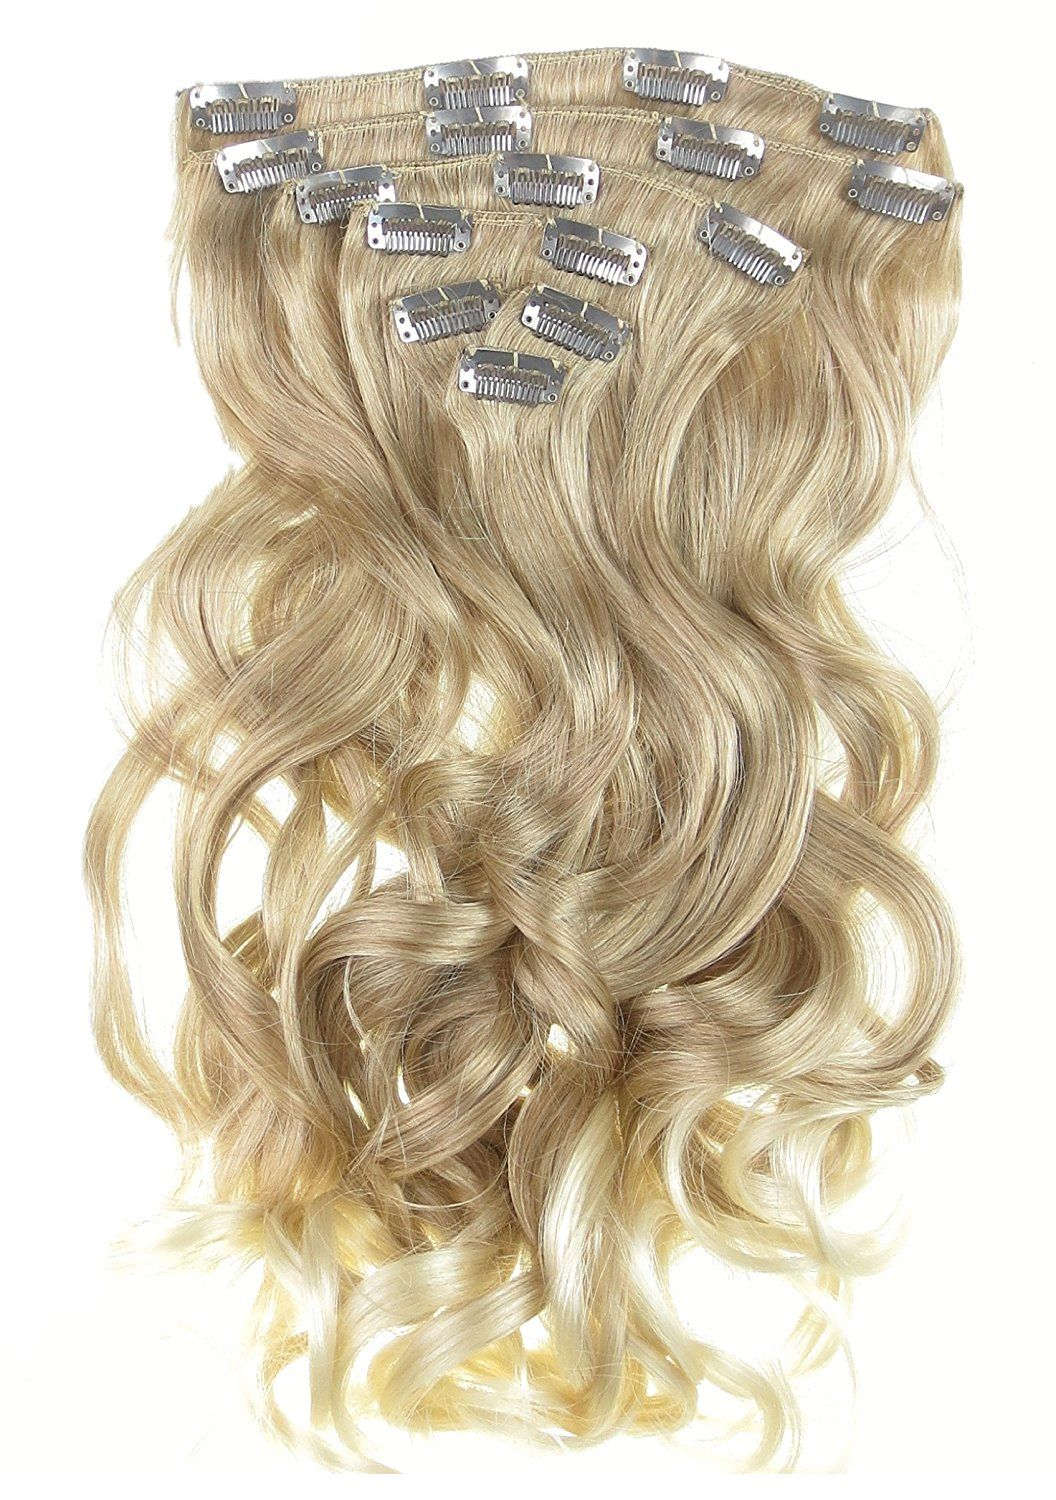 New Real Look Hair Extension Strawberry Blond Nordic Blonde Mix